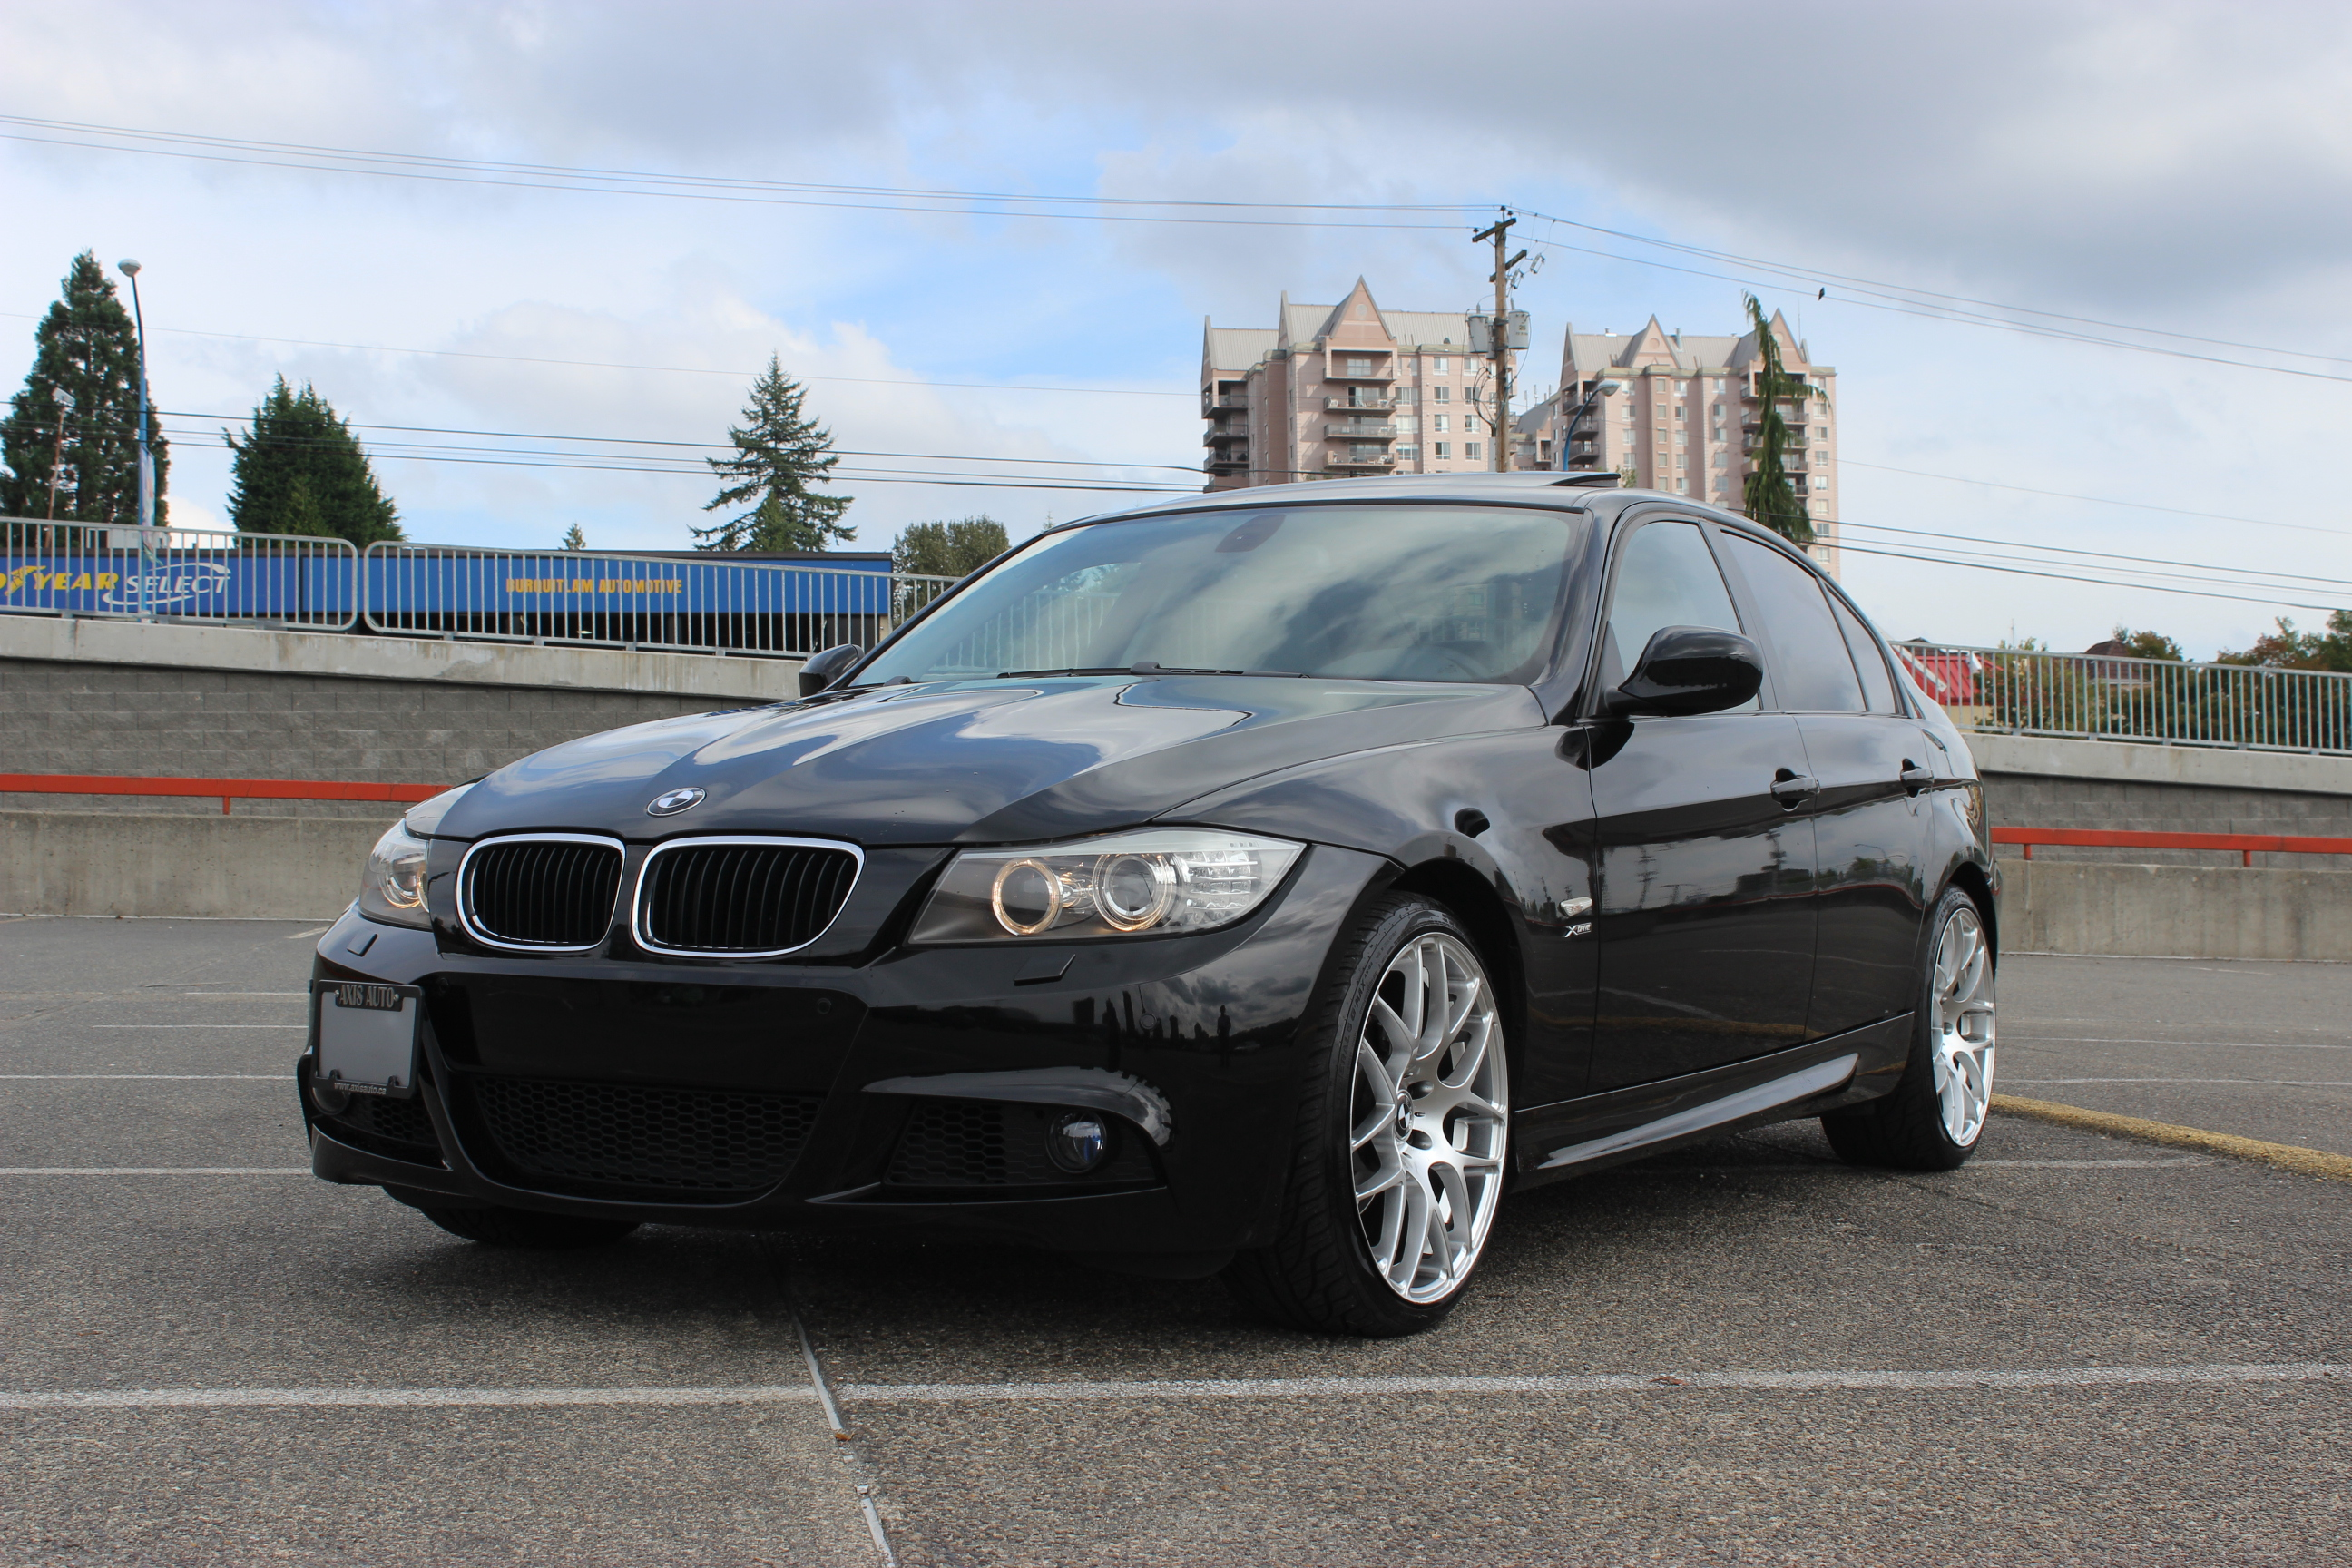 2009 Bmw 328i Xdrive Axis Auto